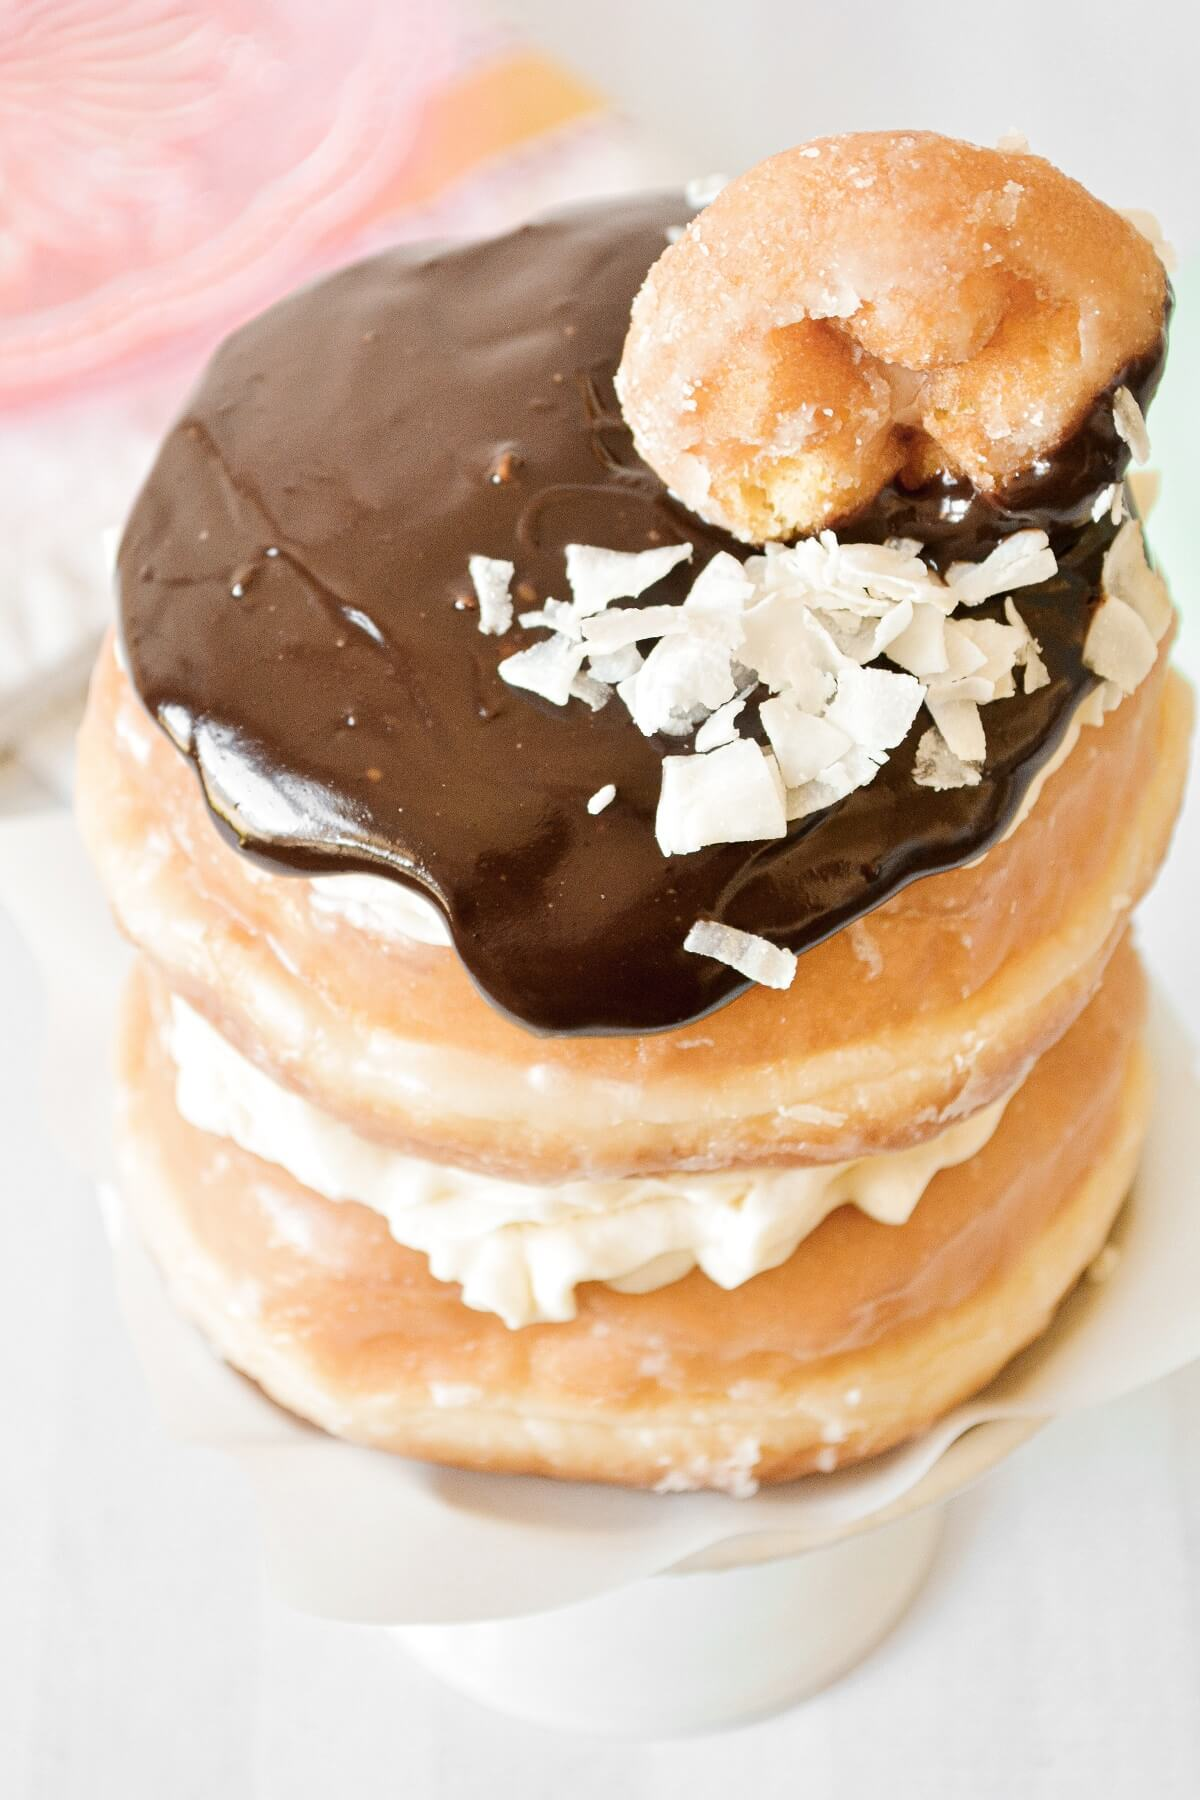 Doughnut cake, filled with custard, and topped with chocolate ganache.